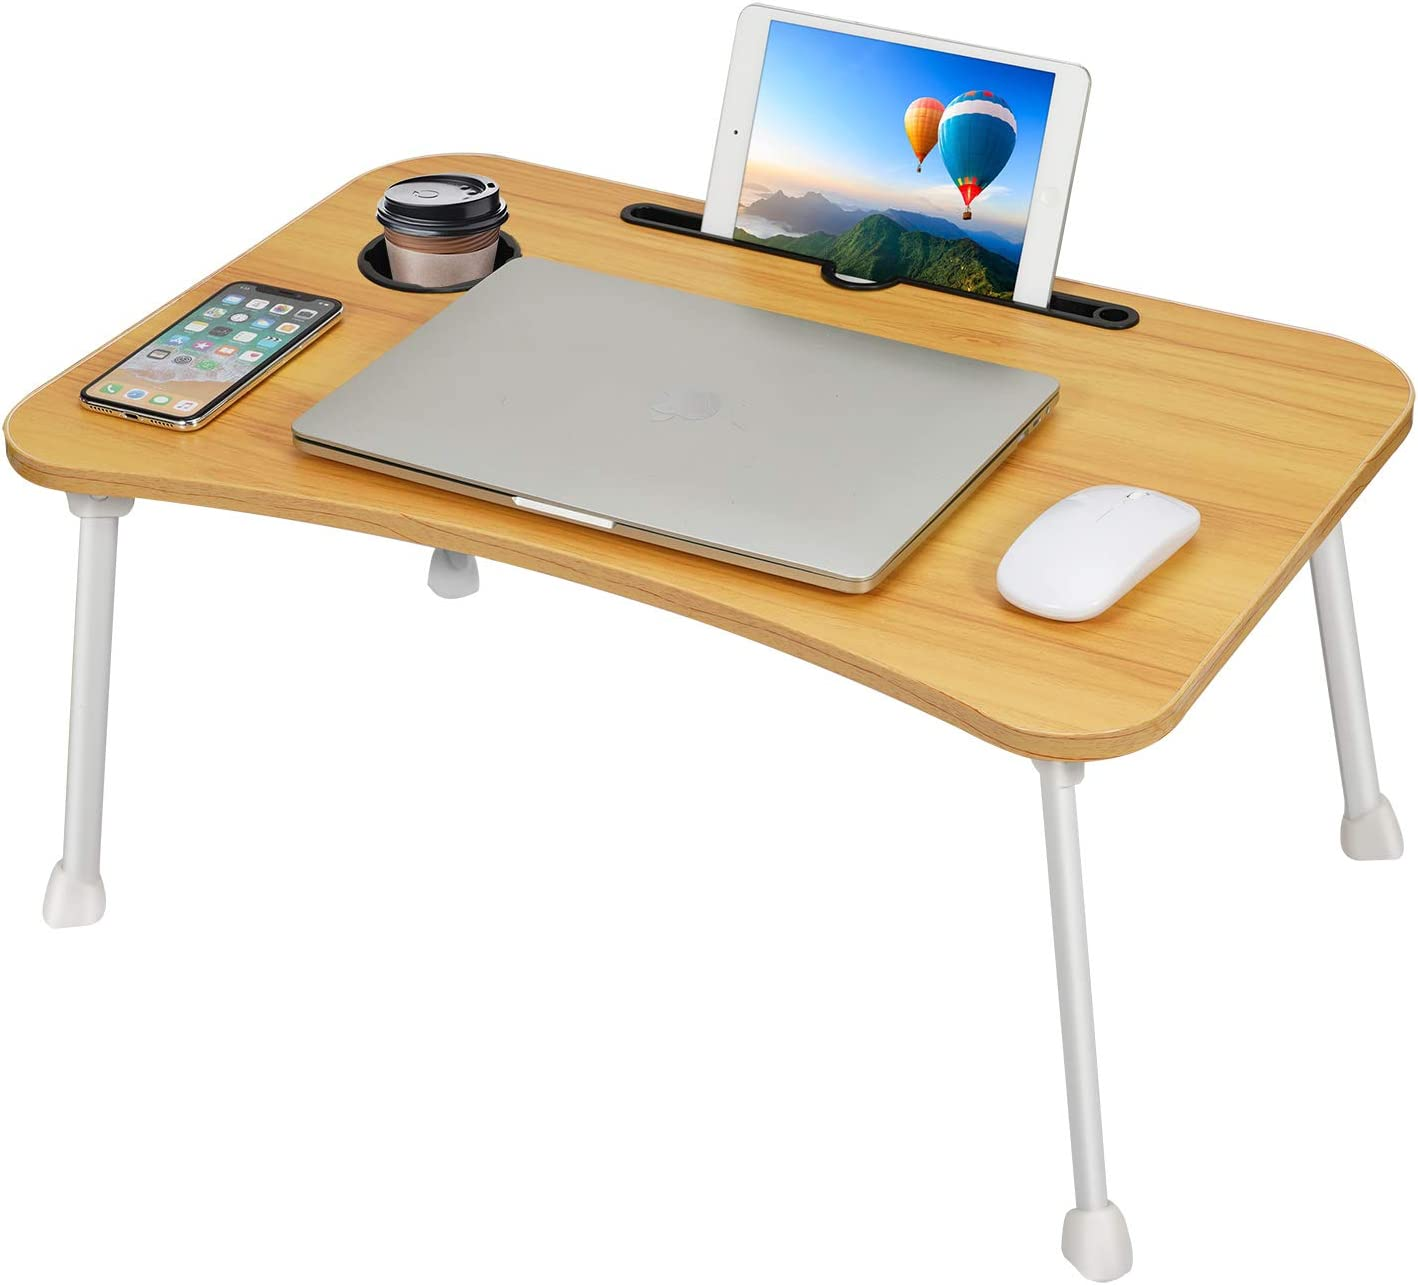 Portable Laptop Lap Desk,Student Computer Desks Coffee Serving Trays Home Office Notebook Stand Desks Bedroom Sofa Dormitory Tablet Lapdesks Lap Tablet with Cup Holder for Home Reading Writing Tables